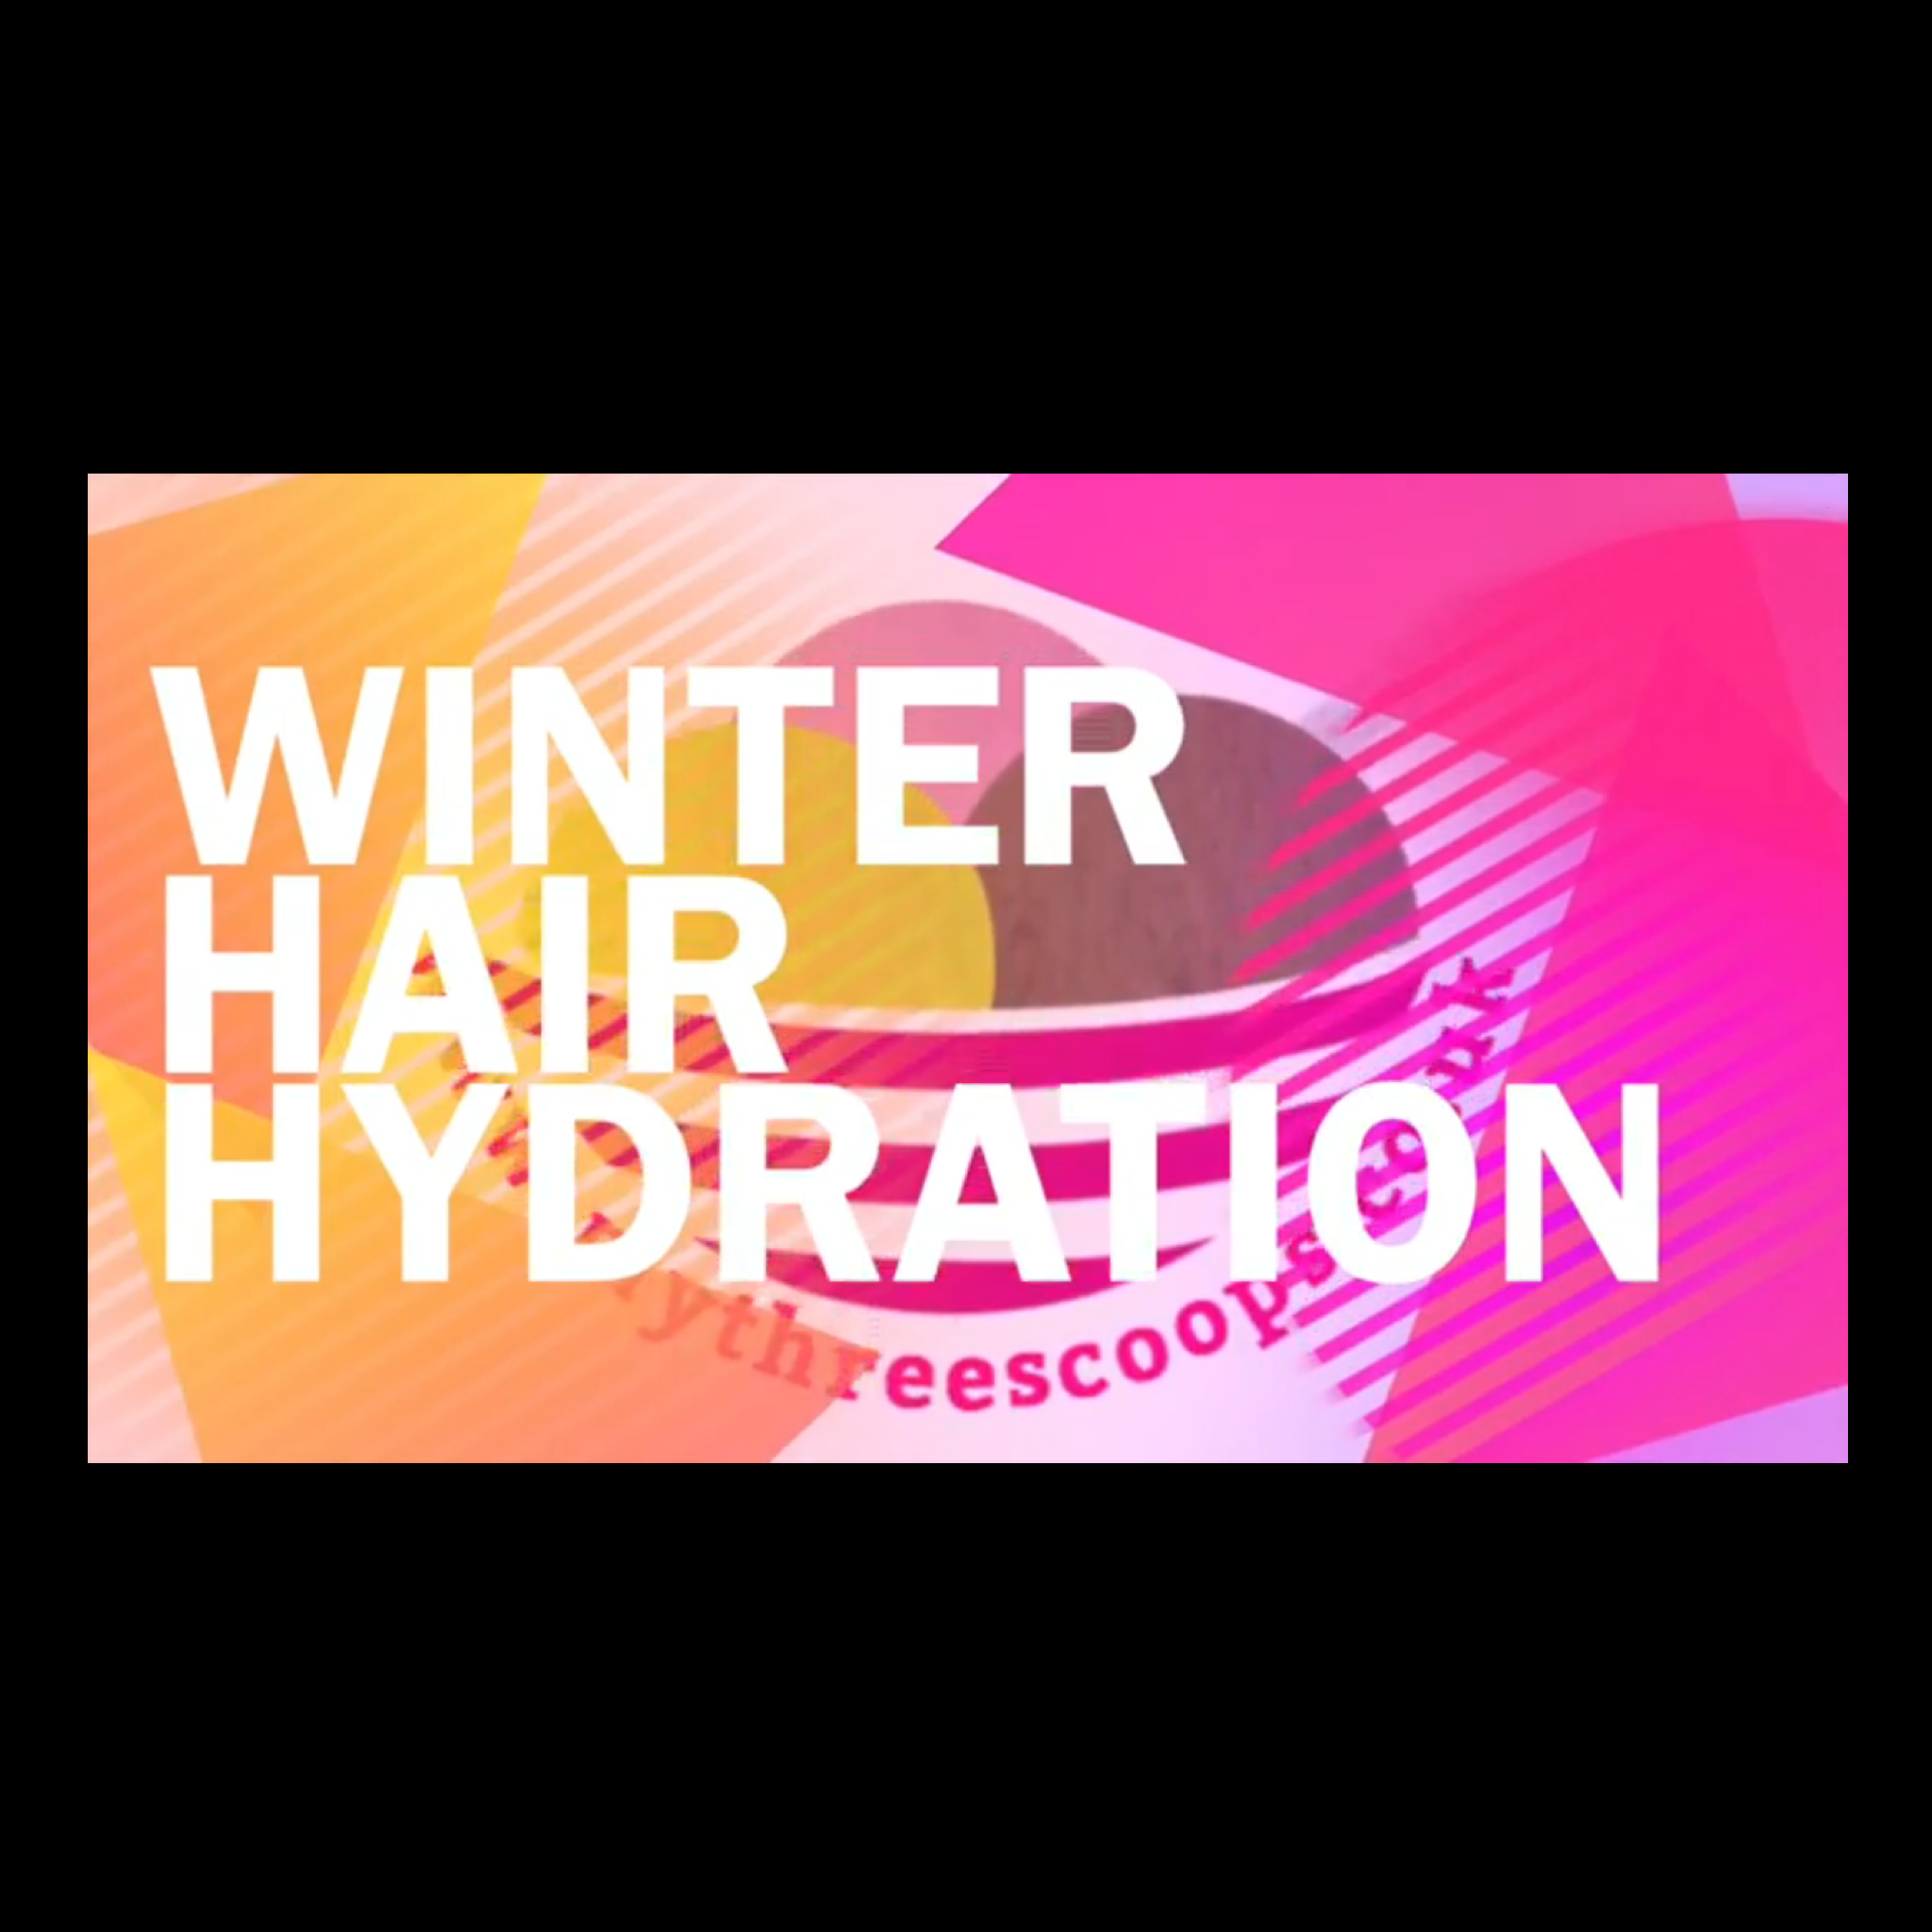 Winter Hair Hydration